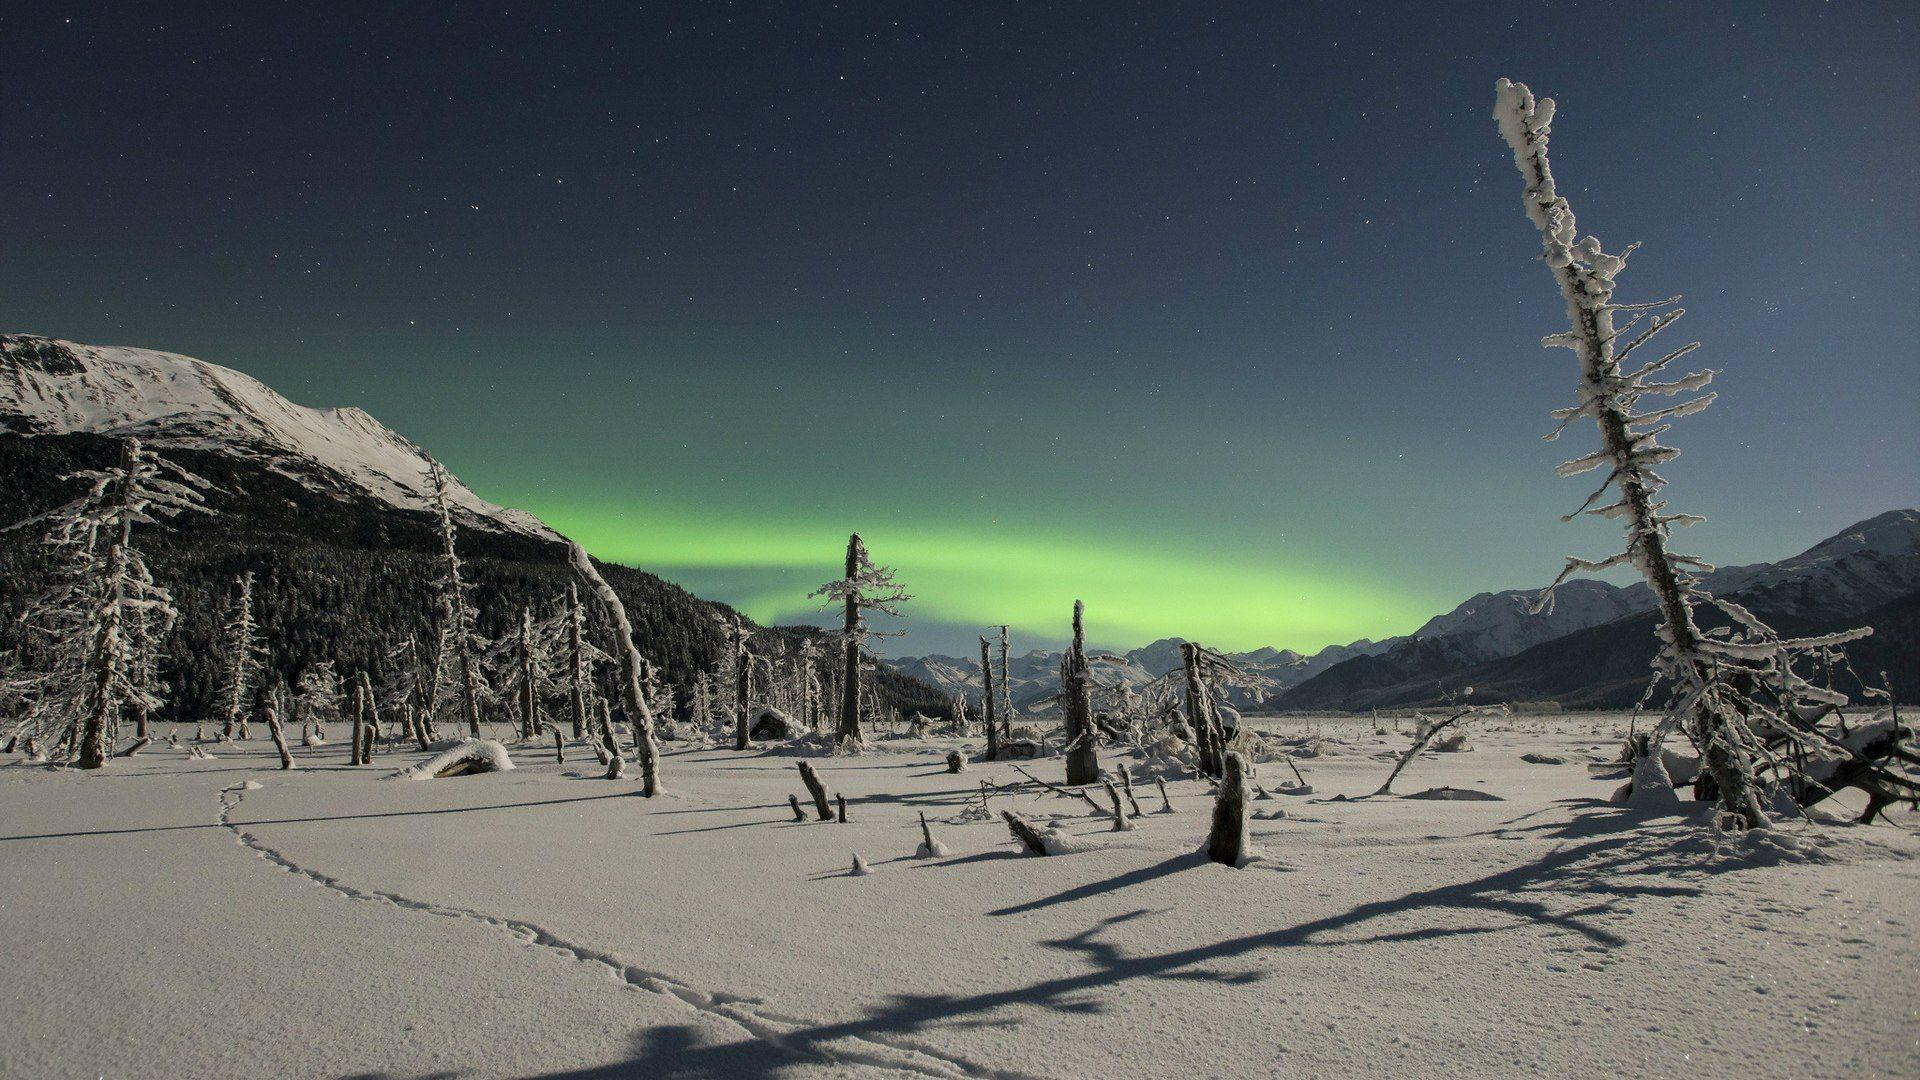 Northern lights over snowy wilderness wallpapers and images ...